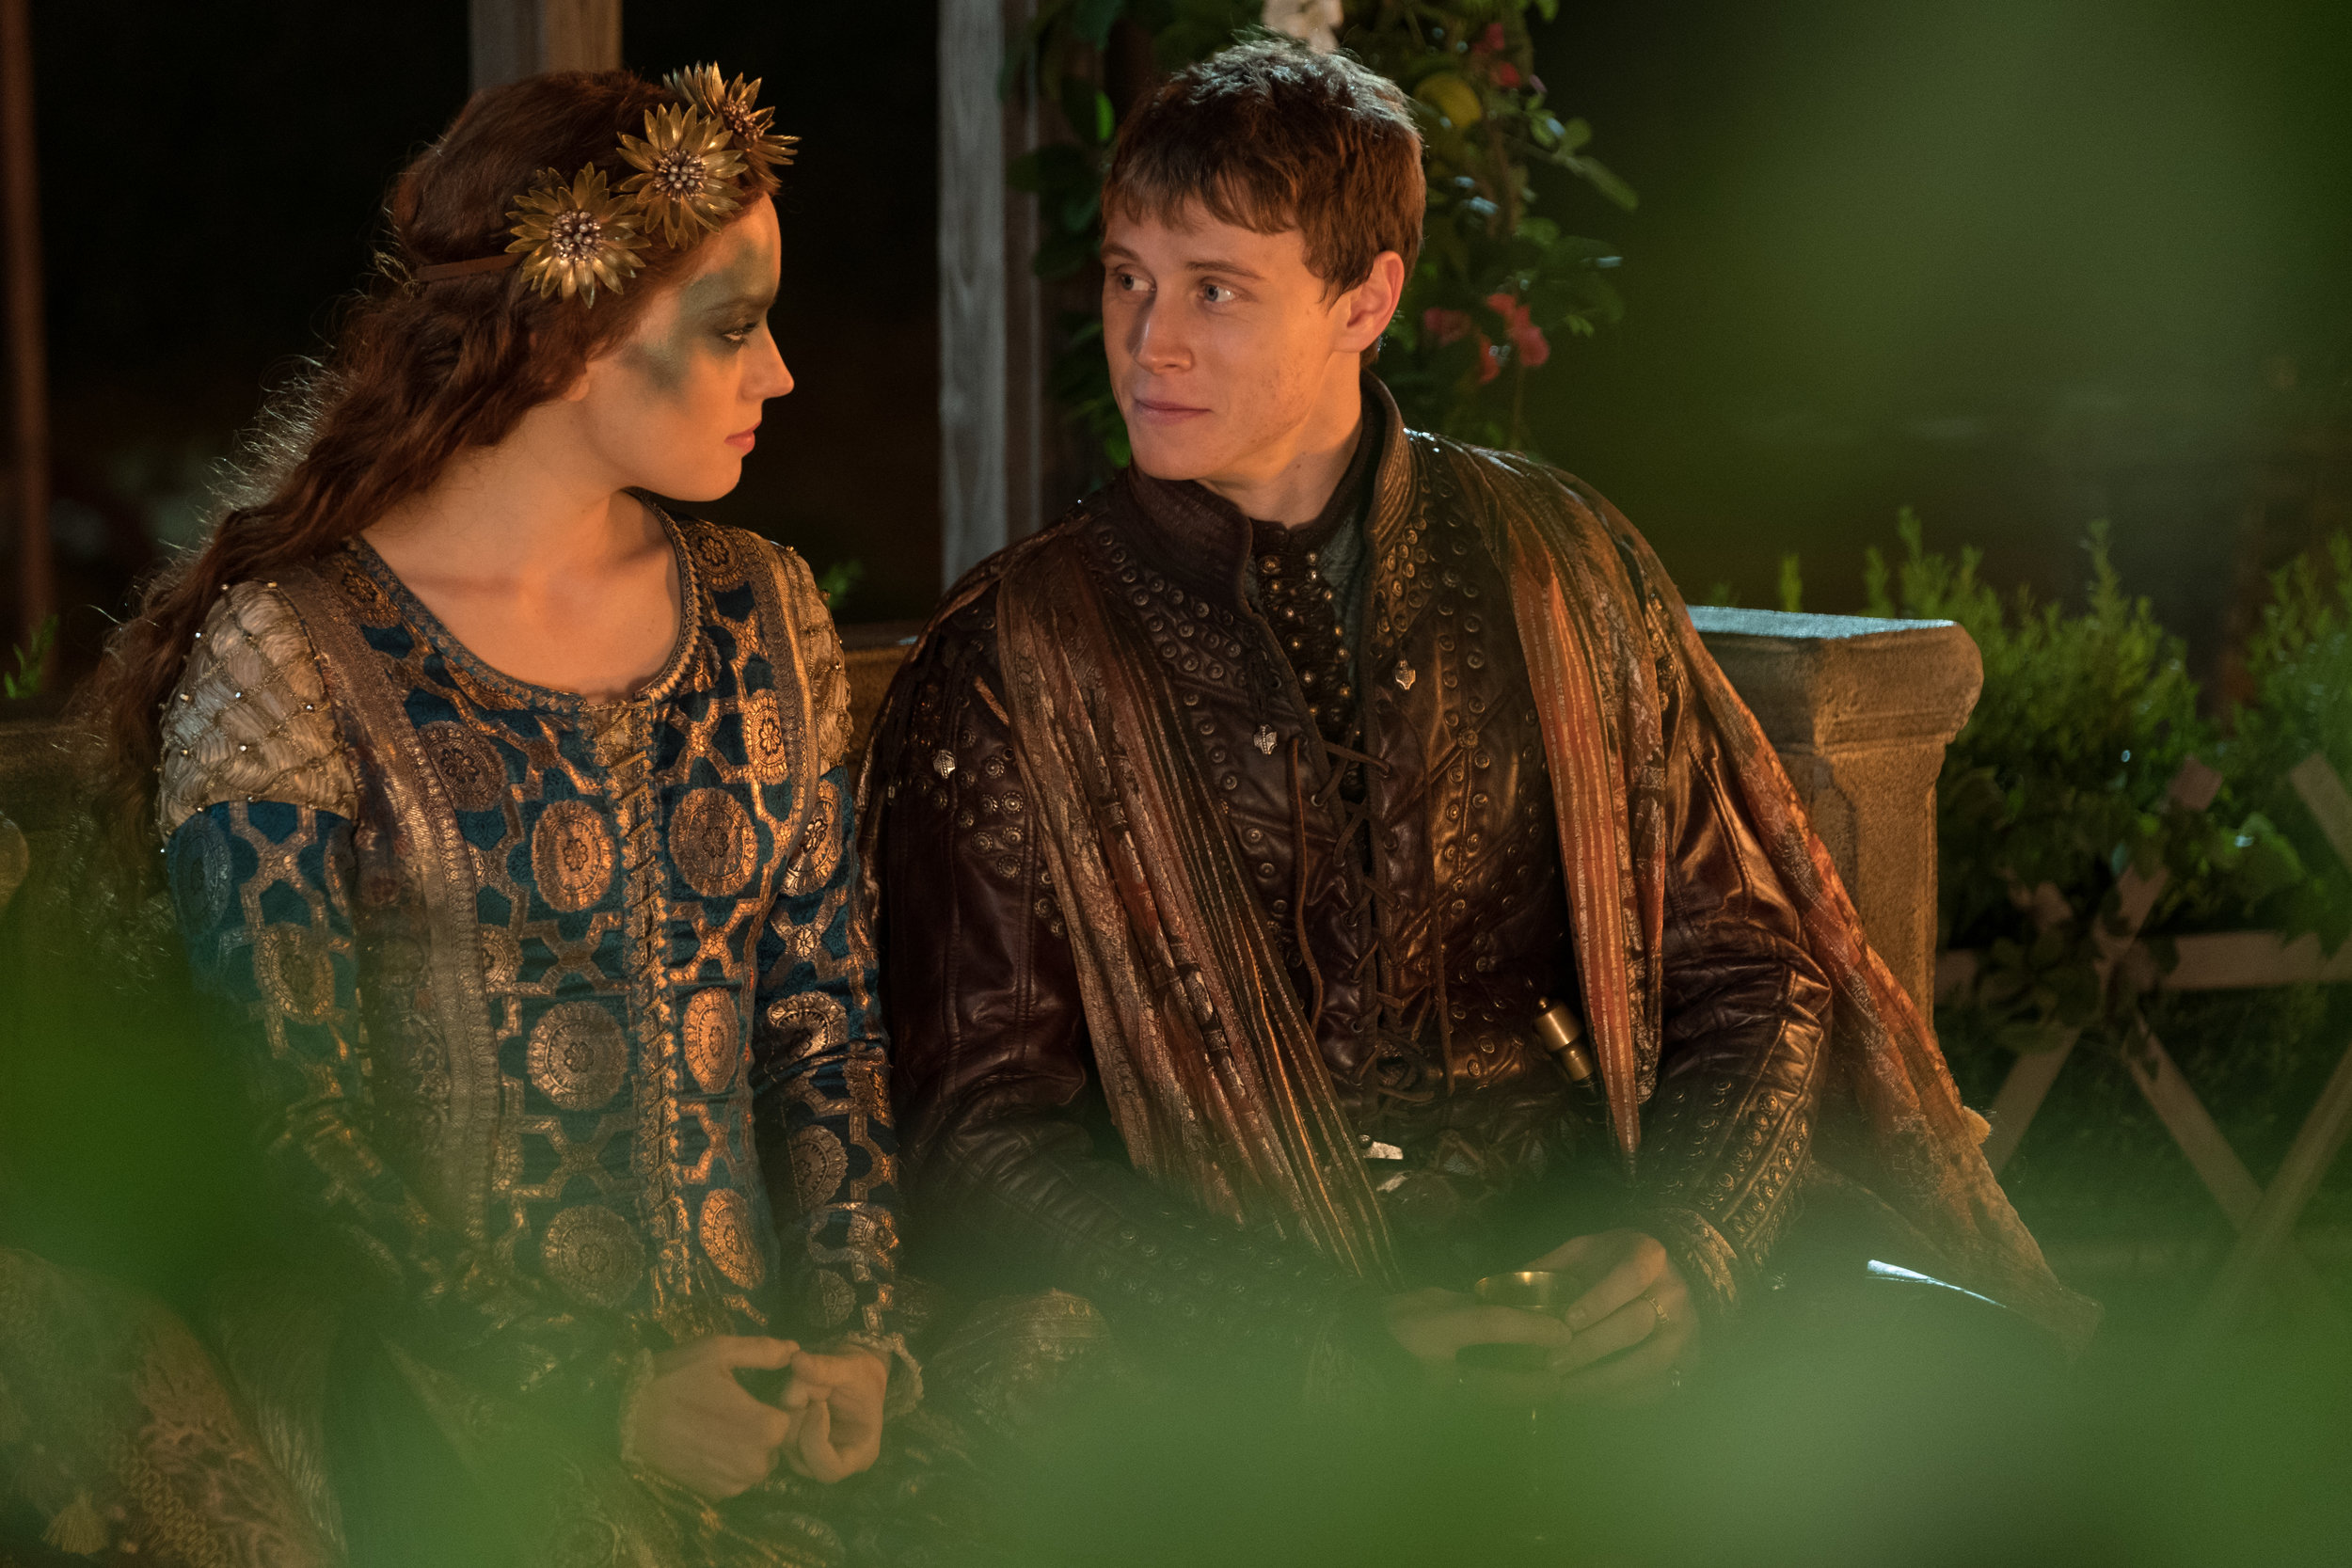 """Ophelia (Daisy Ridley, left) chats with Hamlet (George MacKay) at a masquerade dance, in a scene from Claire McCarthy's """"Ophelia."""" (Photo courtesy IFC Films.)"""